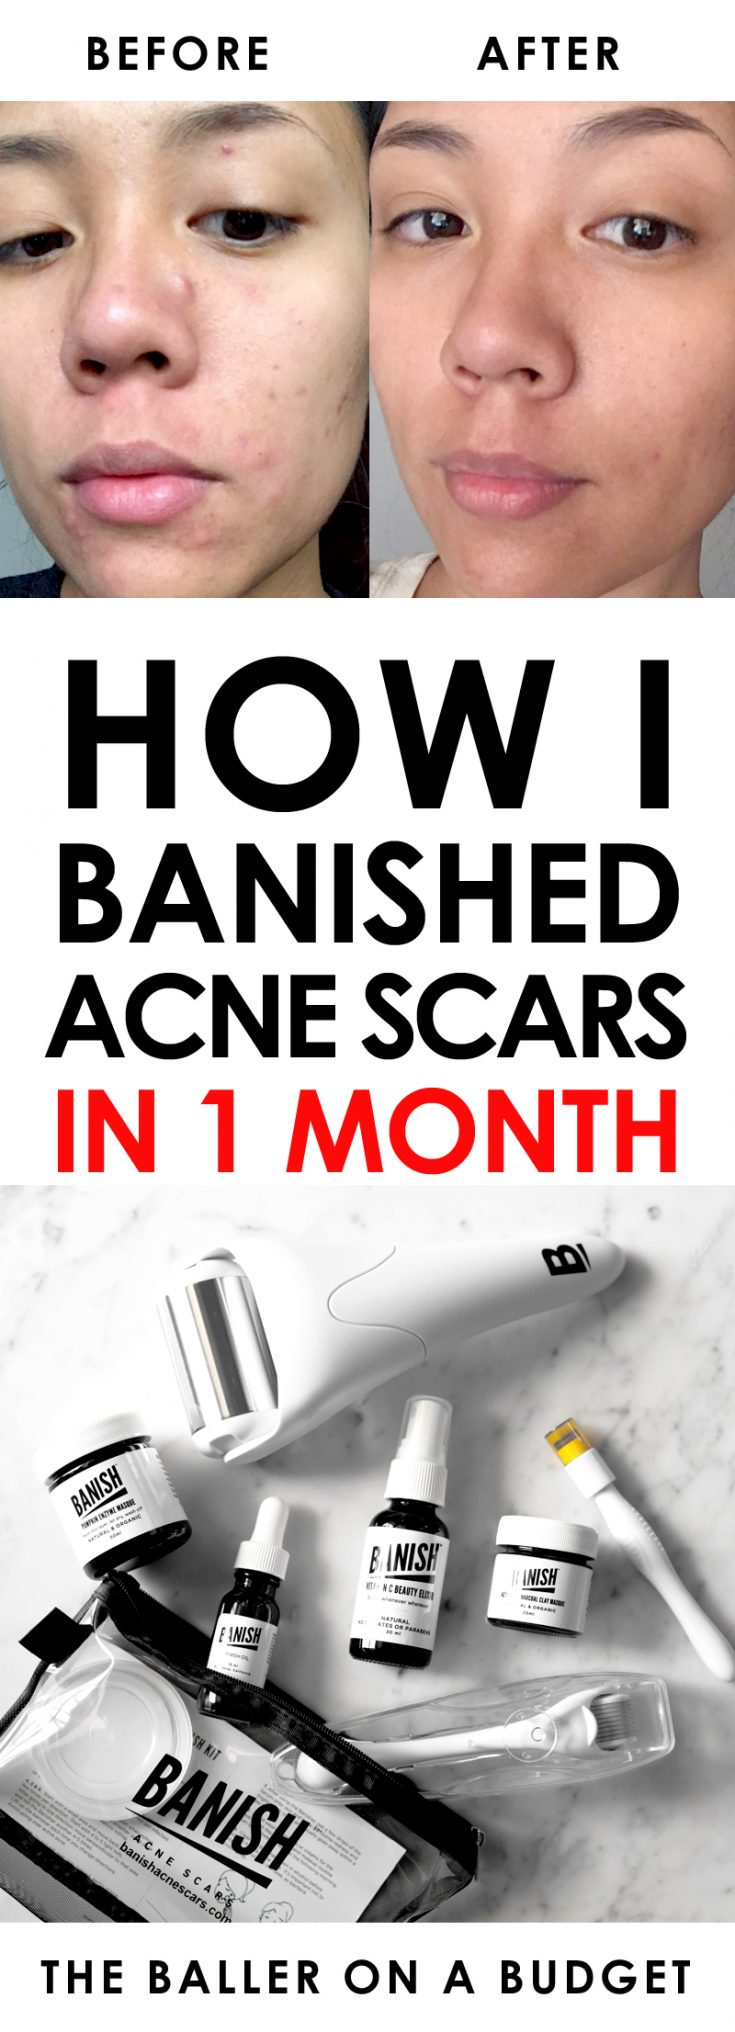 Even as an esthetician, I struggled with hormonal acne. Click here to read more about my journey to curing acne and how I banished acne scars in 1 month. - www.theballeronabudget.com